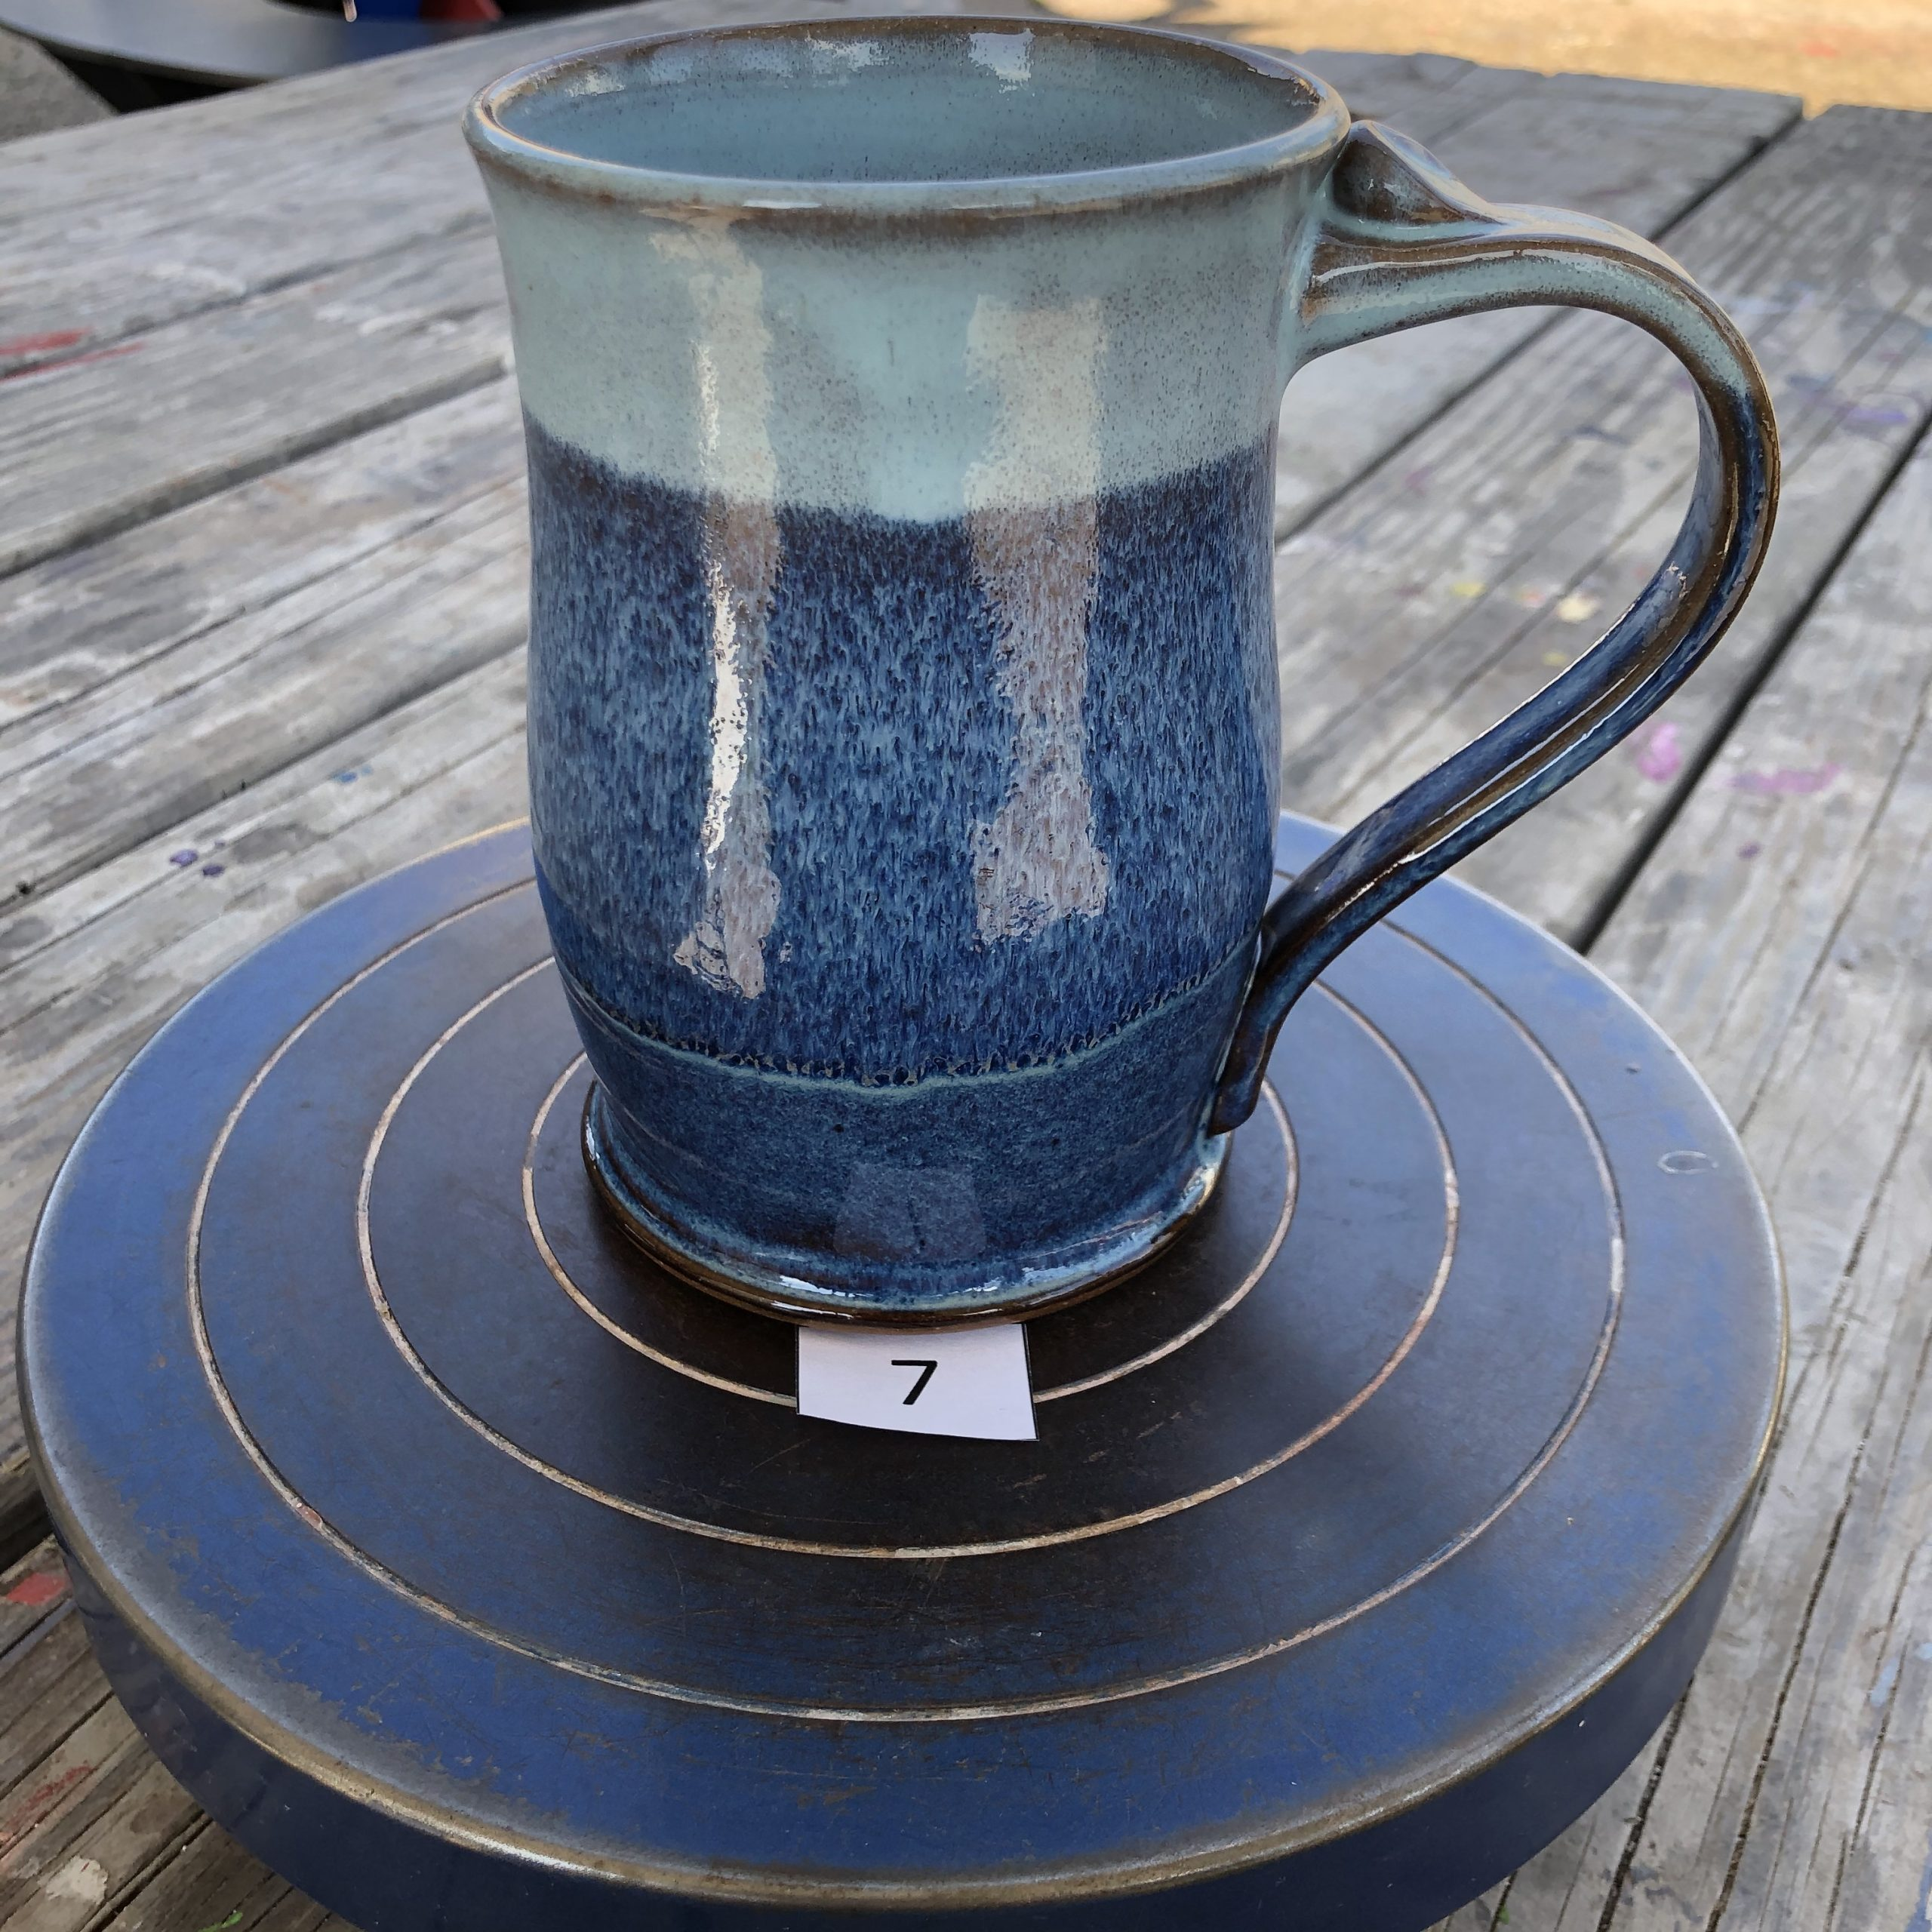 Amy Kovats Shades of Blue Mug #7